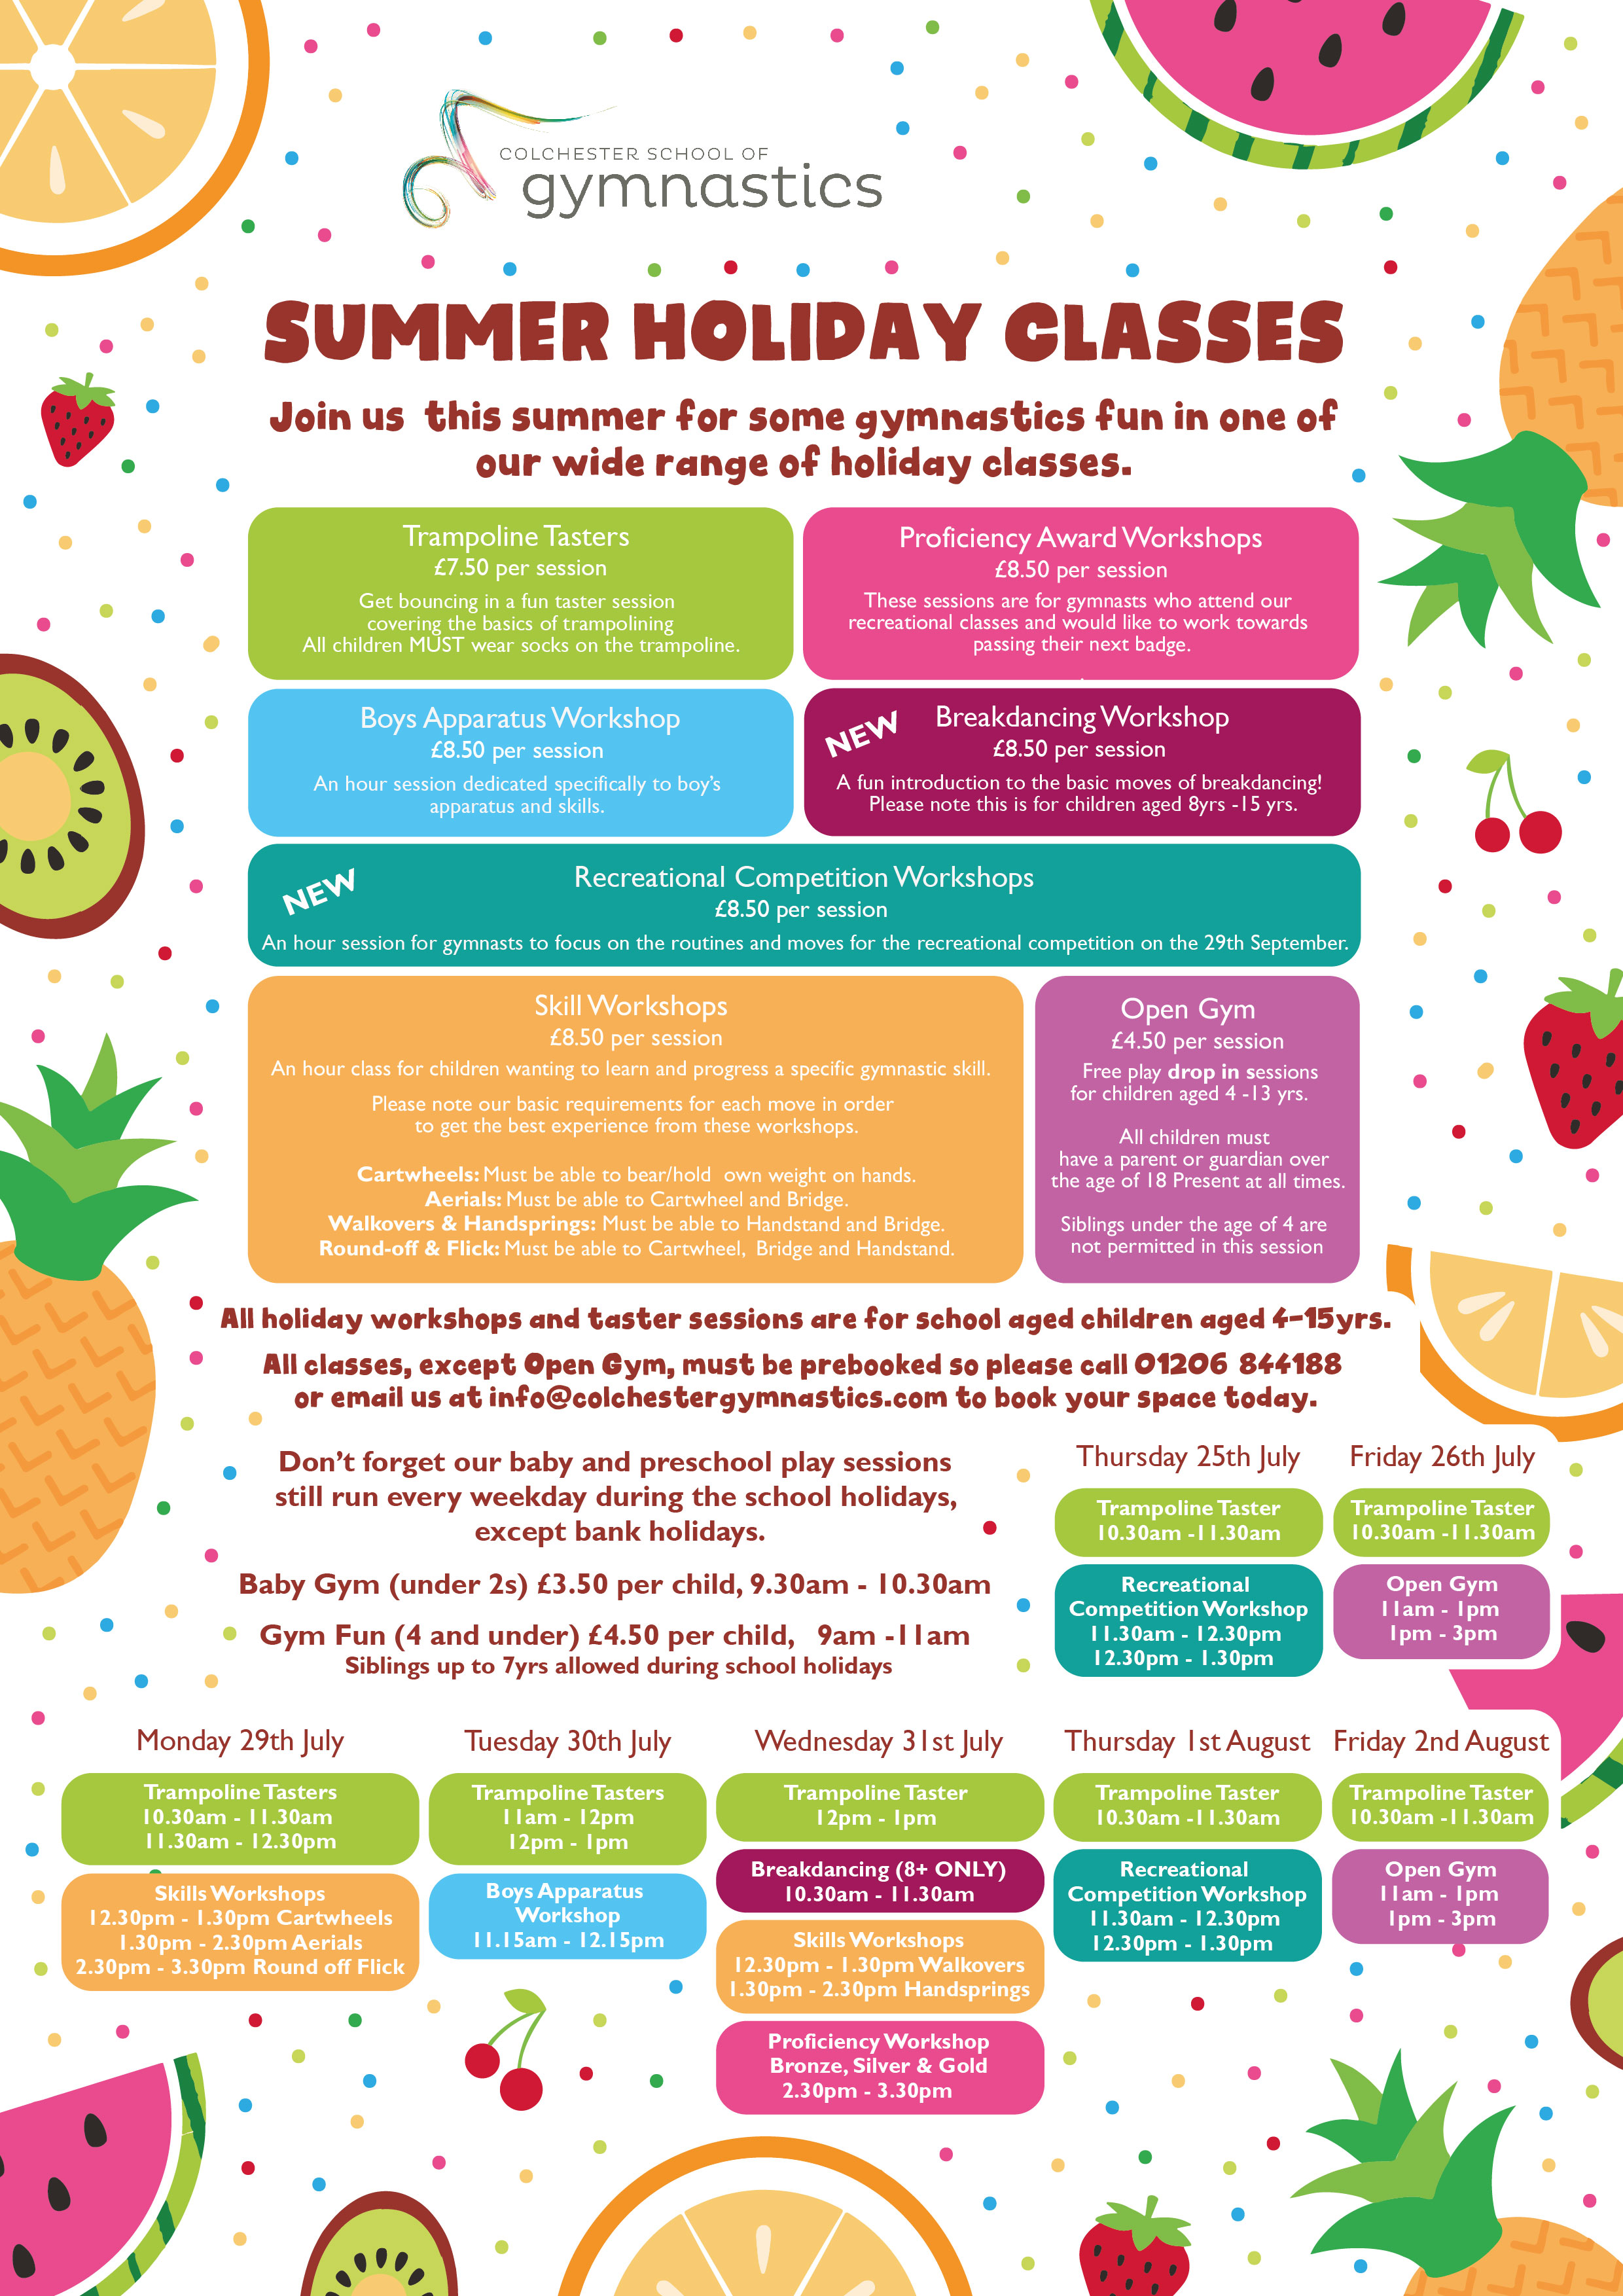 CSG Summer Holiday Poster 2019 Fruit PG 1